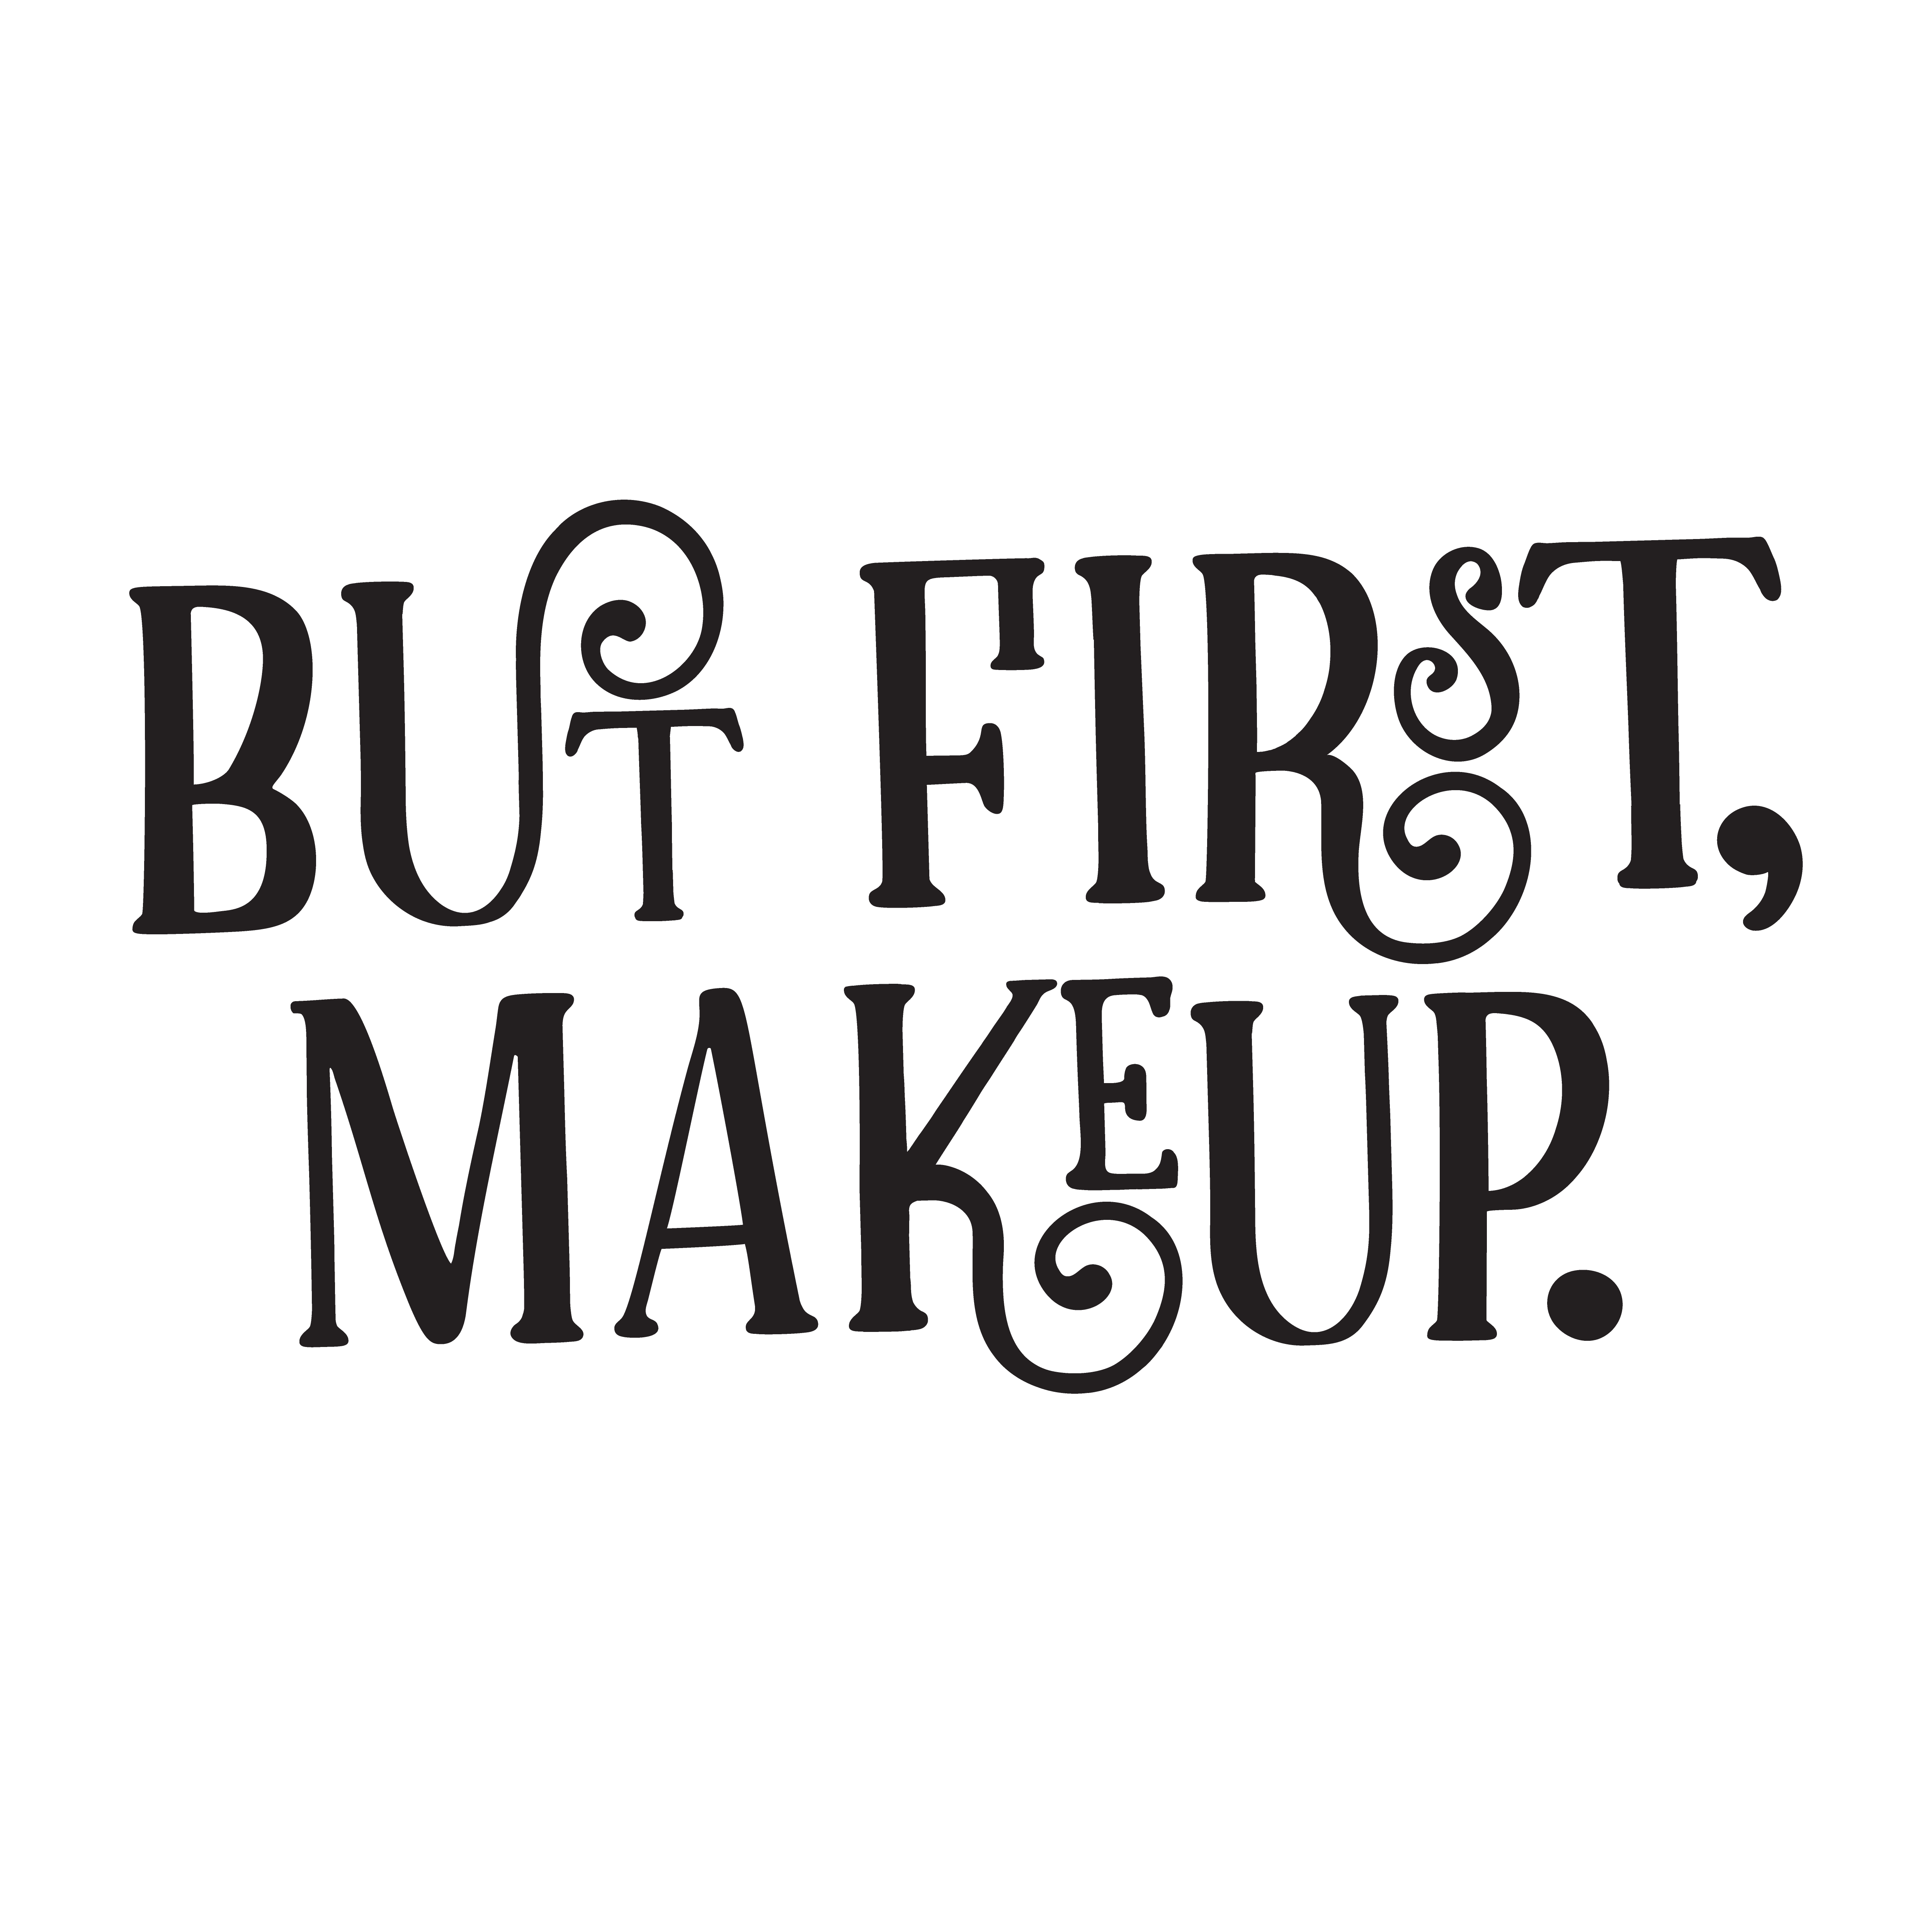 Black And White Bathroom Designs But First Makeup Free Svg Cut File